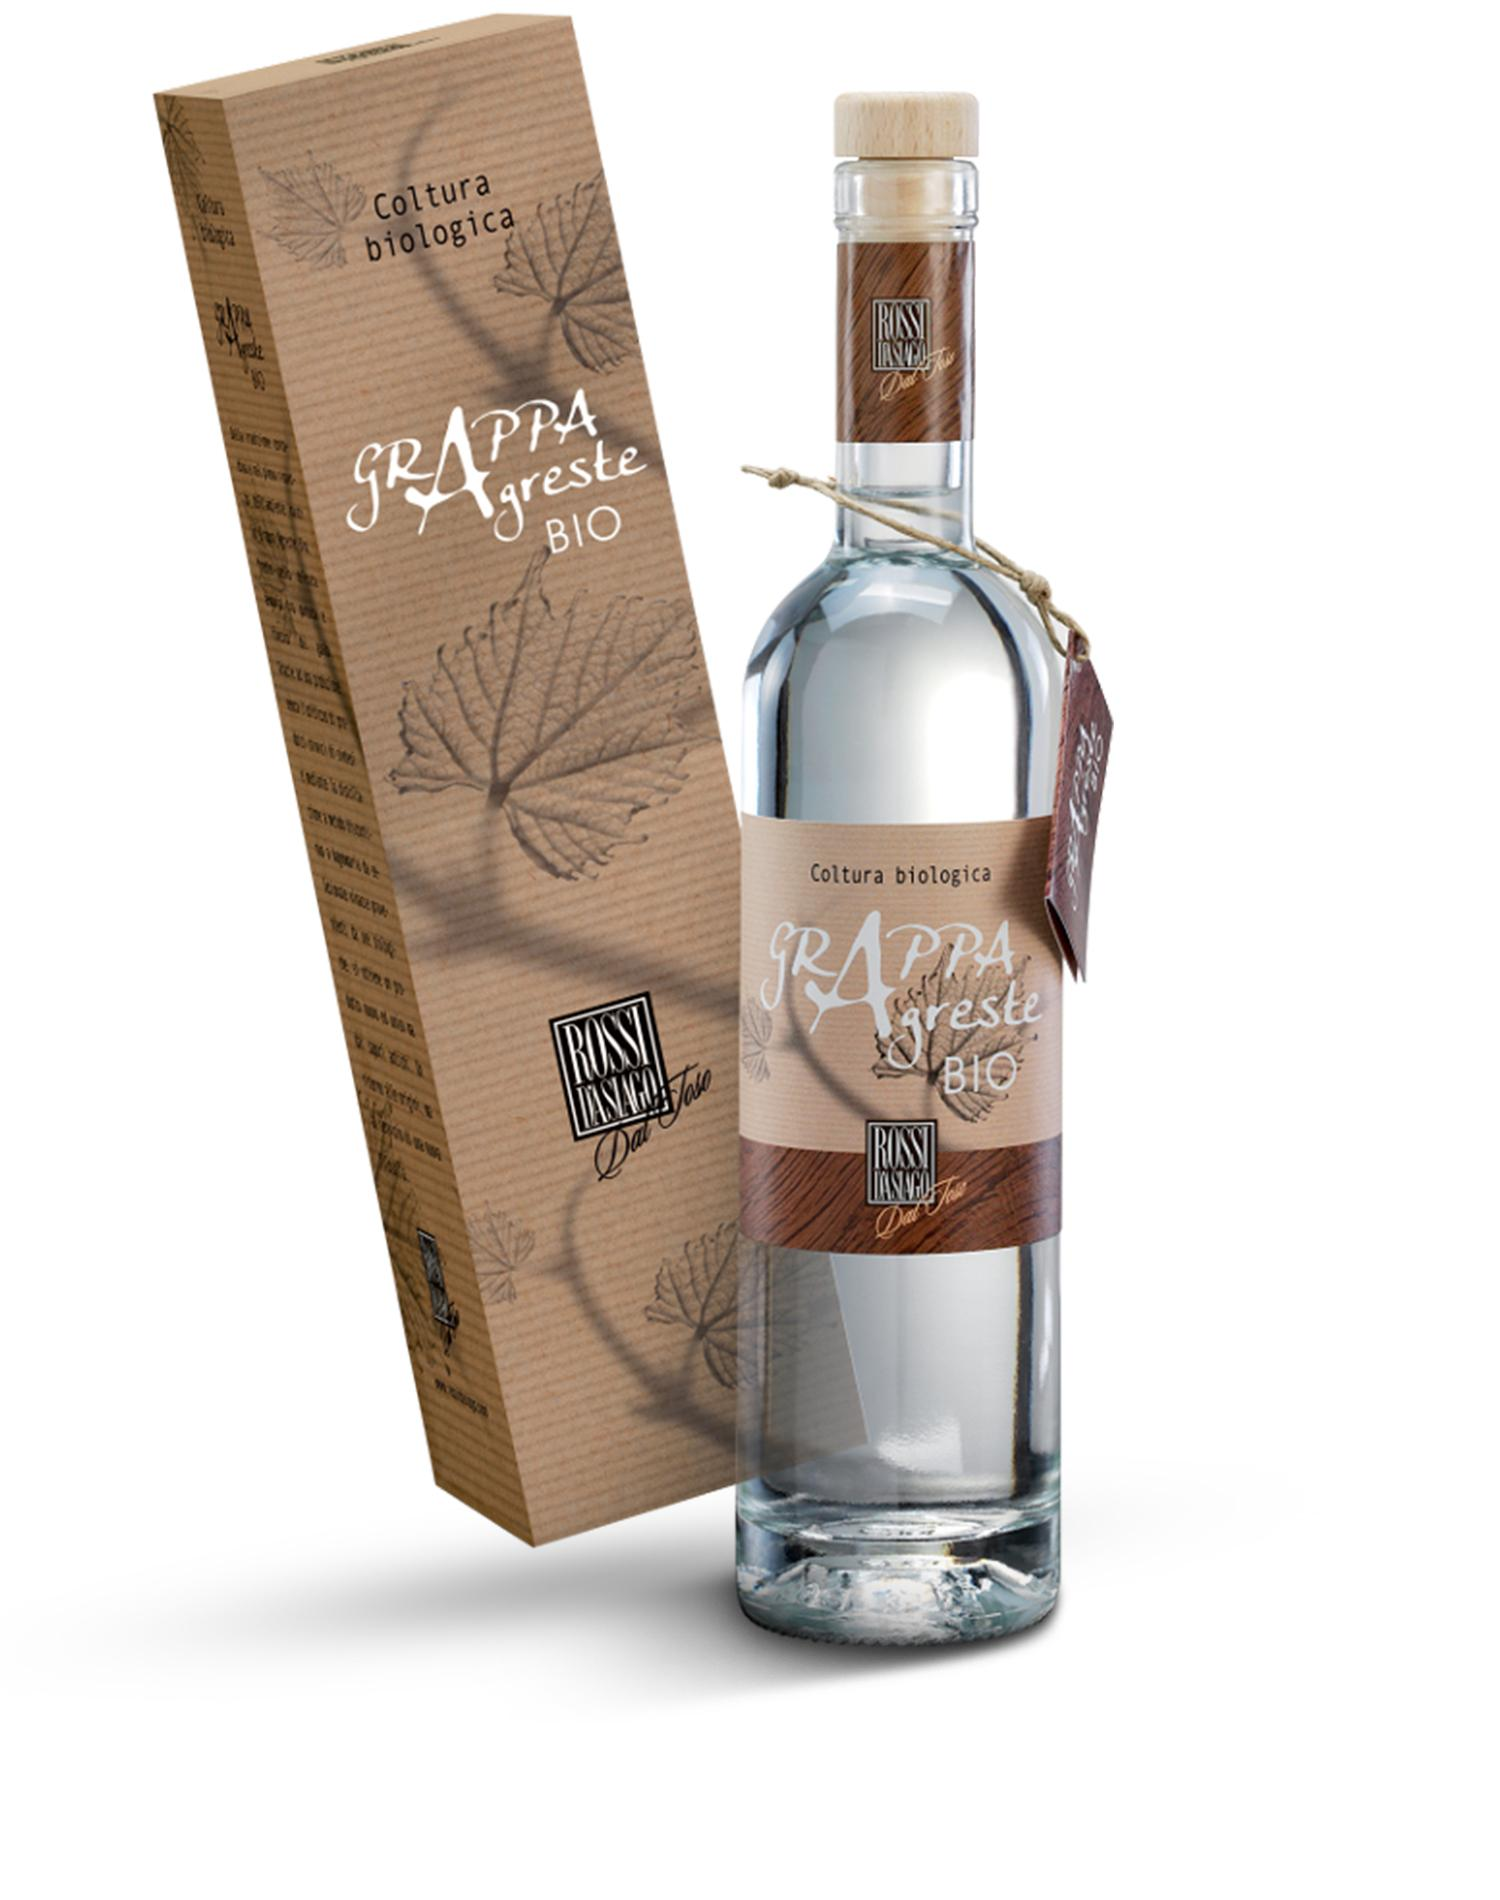 Grappa Agreste BIO